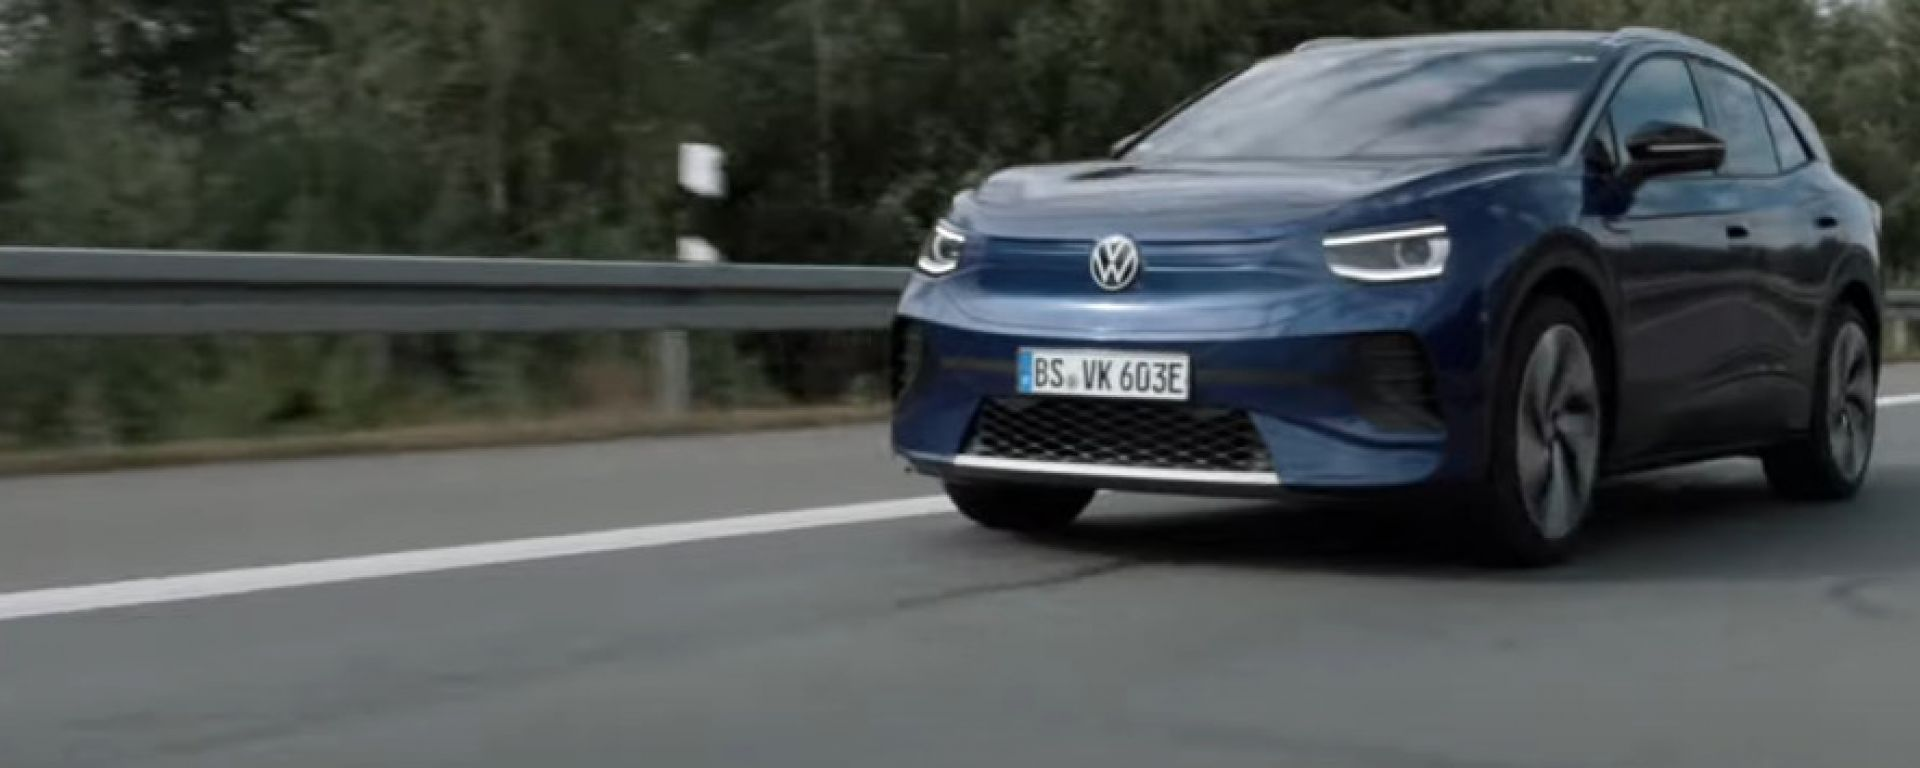 VW ID.4, un fotogramma dell'ultimo video teaser